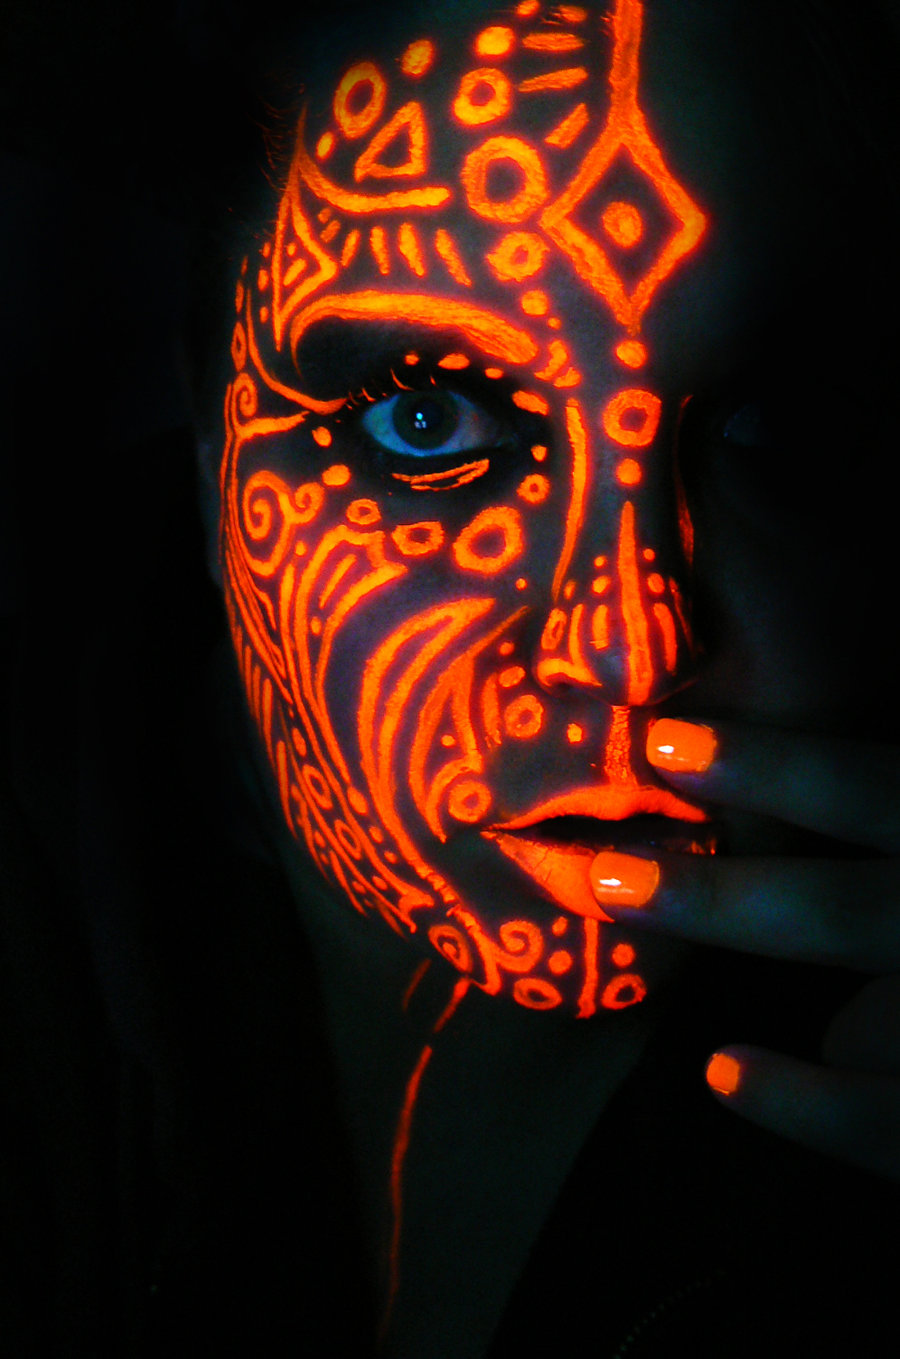 neon_queen_of_orange_by_blackmagdalena-d5gx4ik